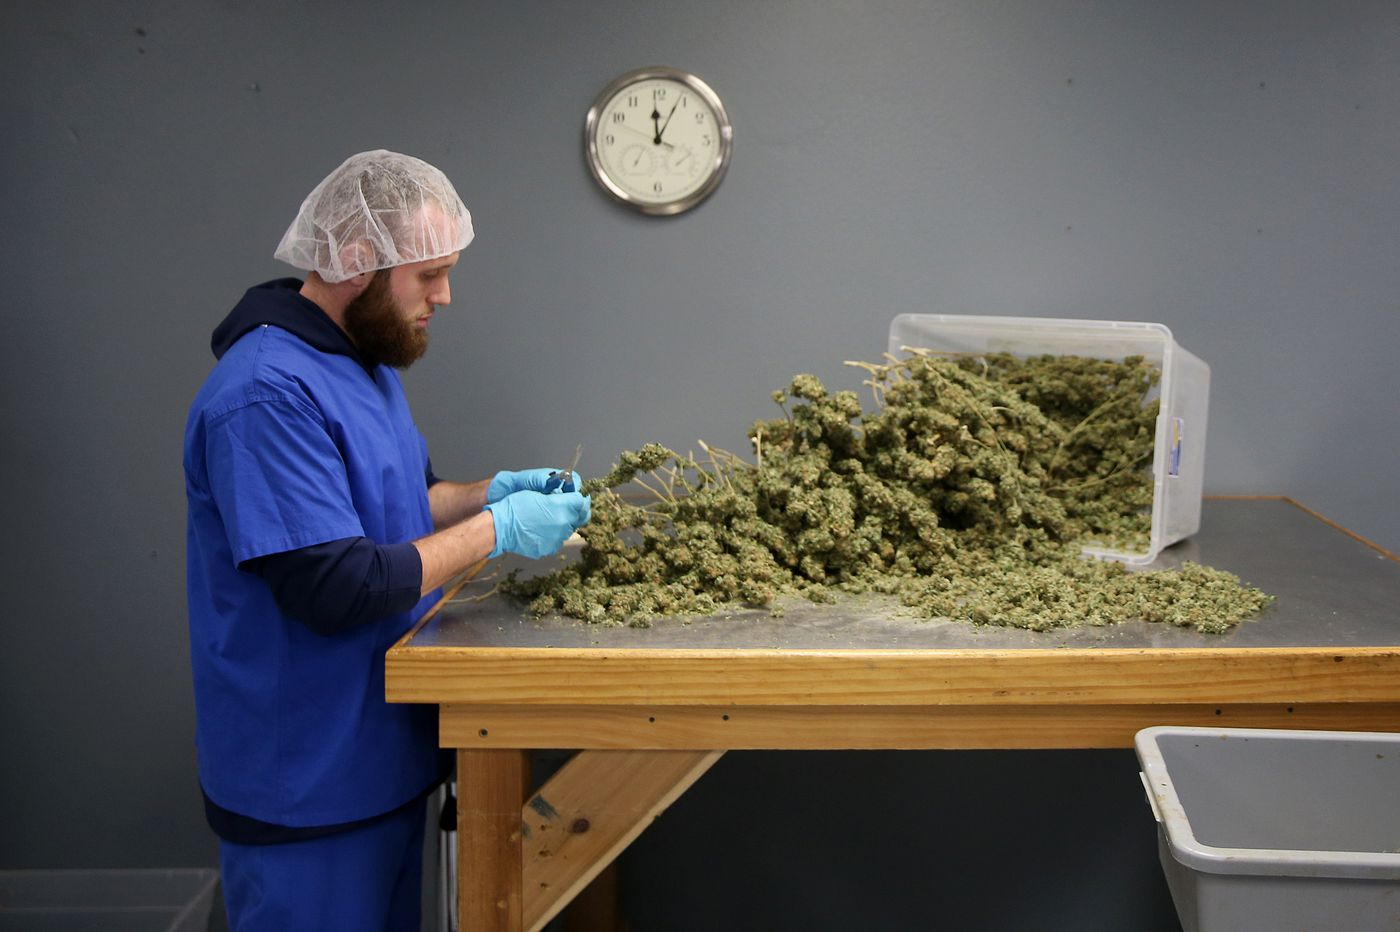 Public faith in marijuana outpaces medical research, study finds